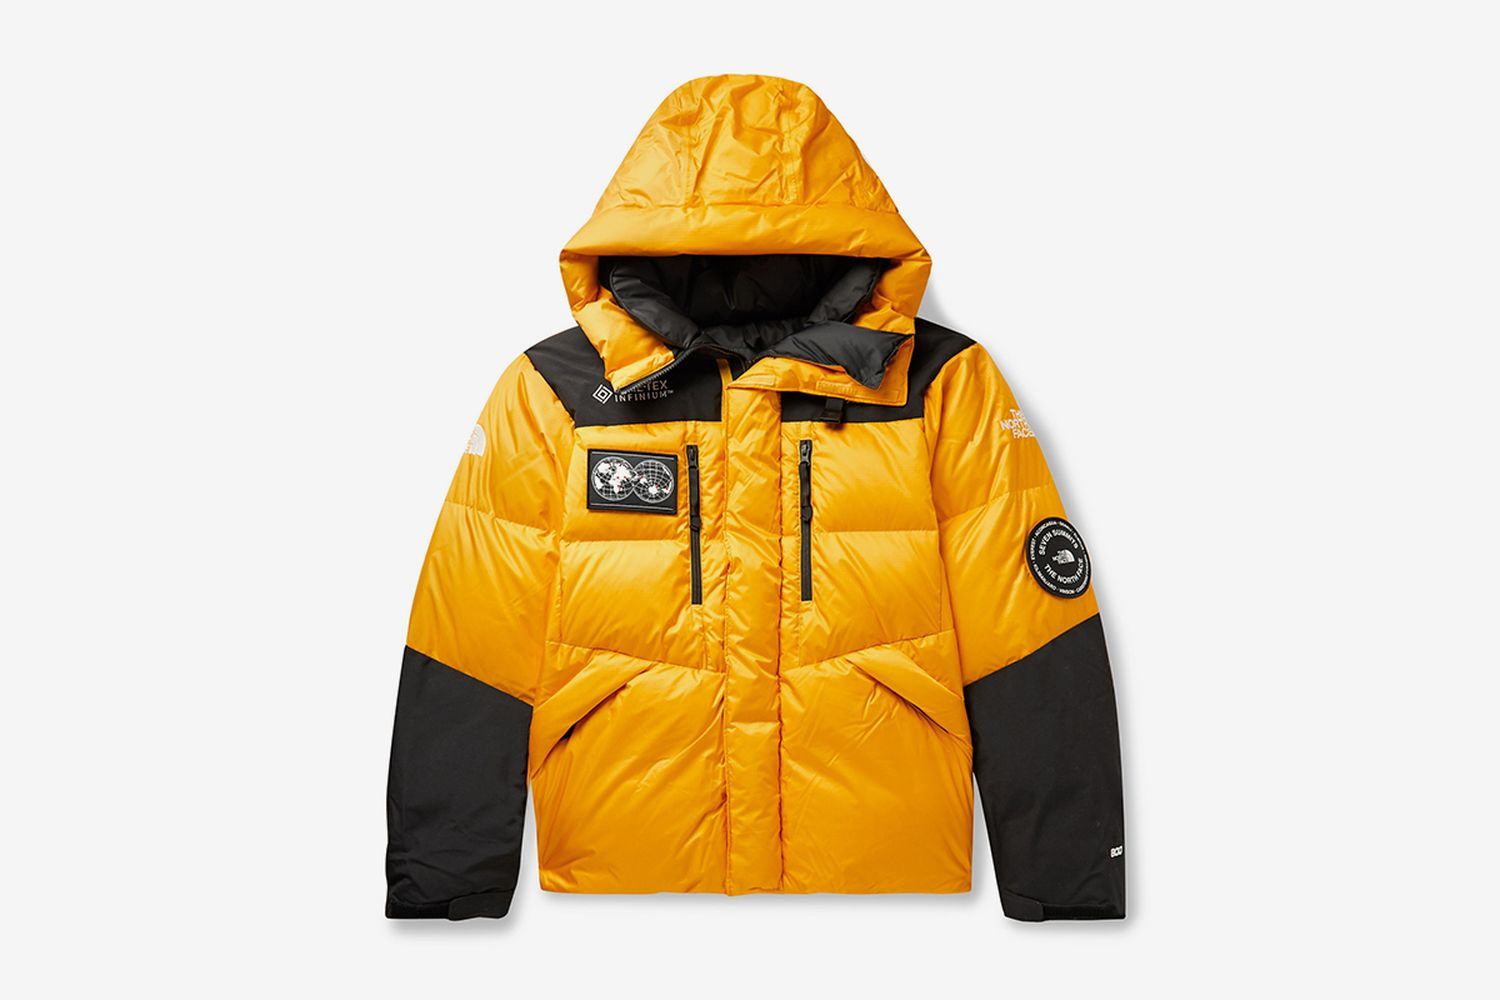 7SE Himalyan GORE-TEX Down Jacket